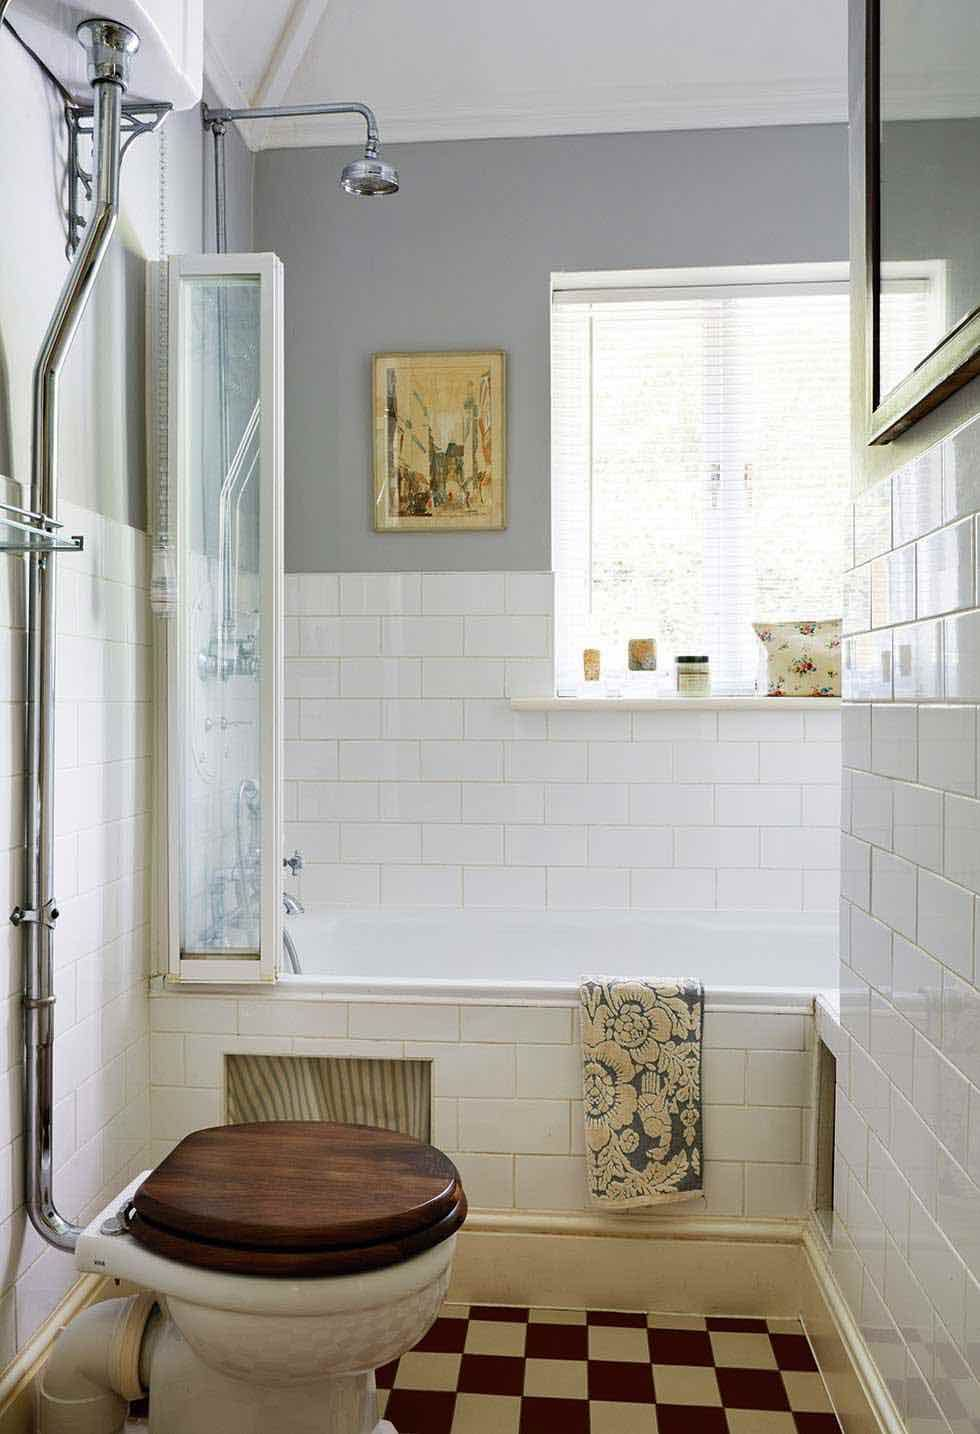 small victorian style bathroom | kitchen dining | Pinterest | Victorian style bathroom ...